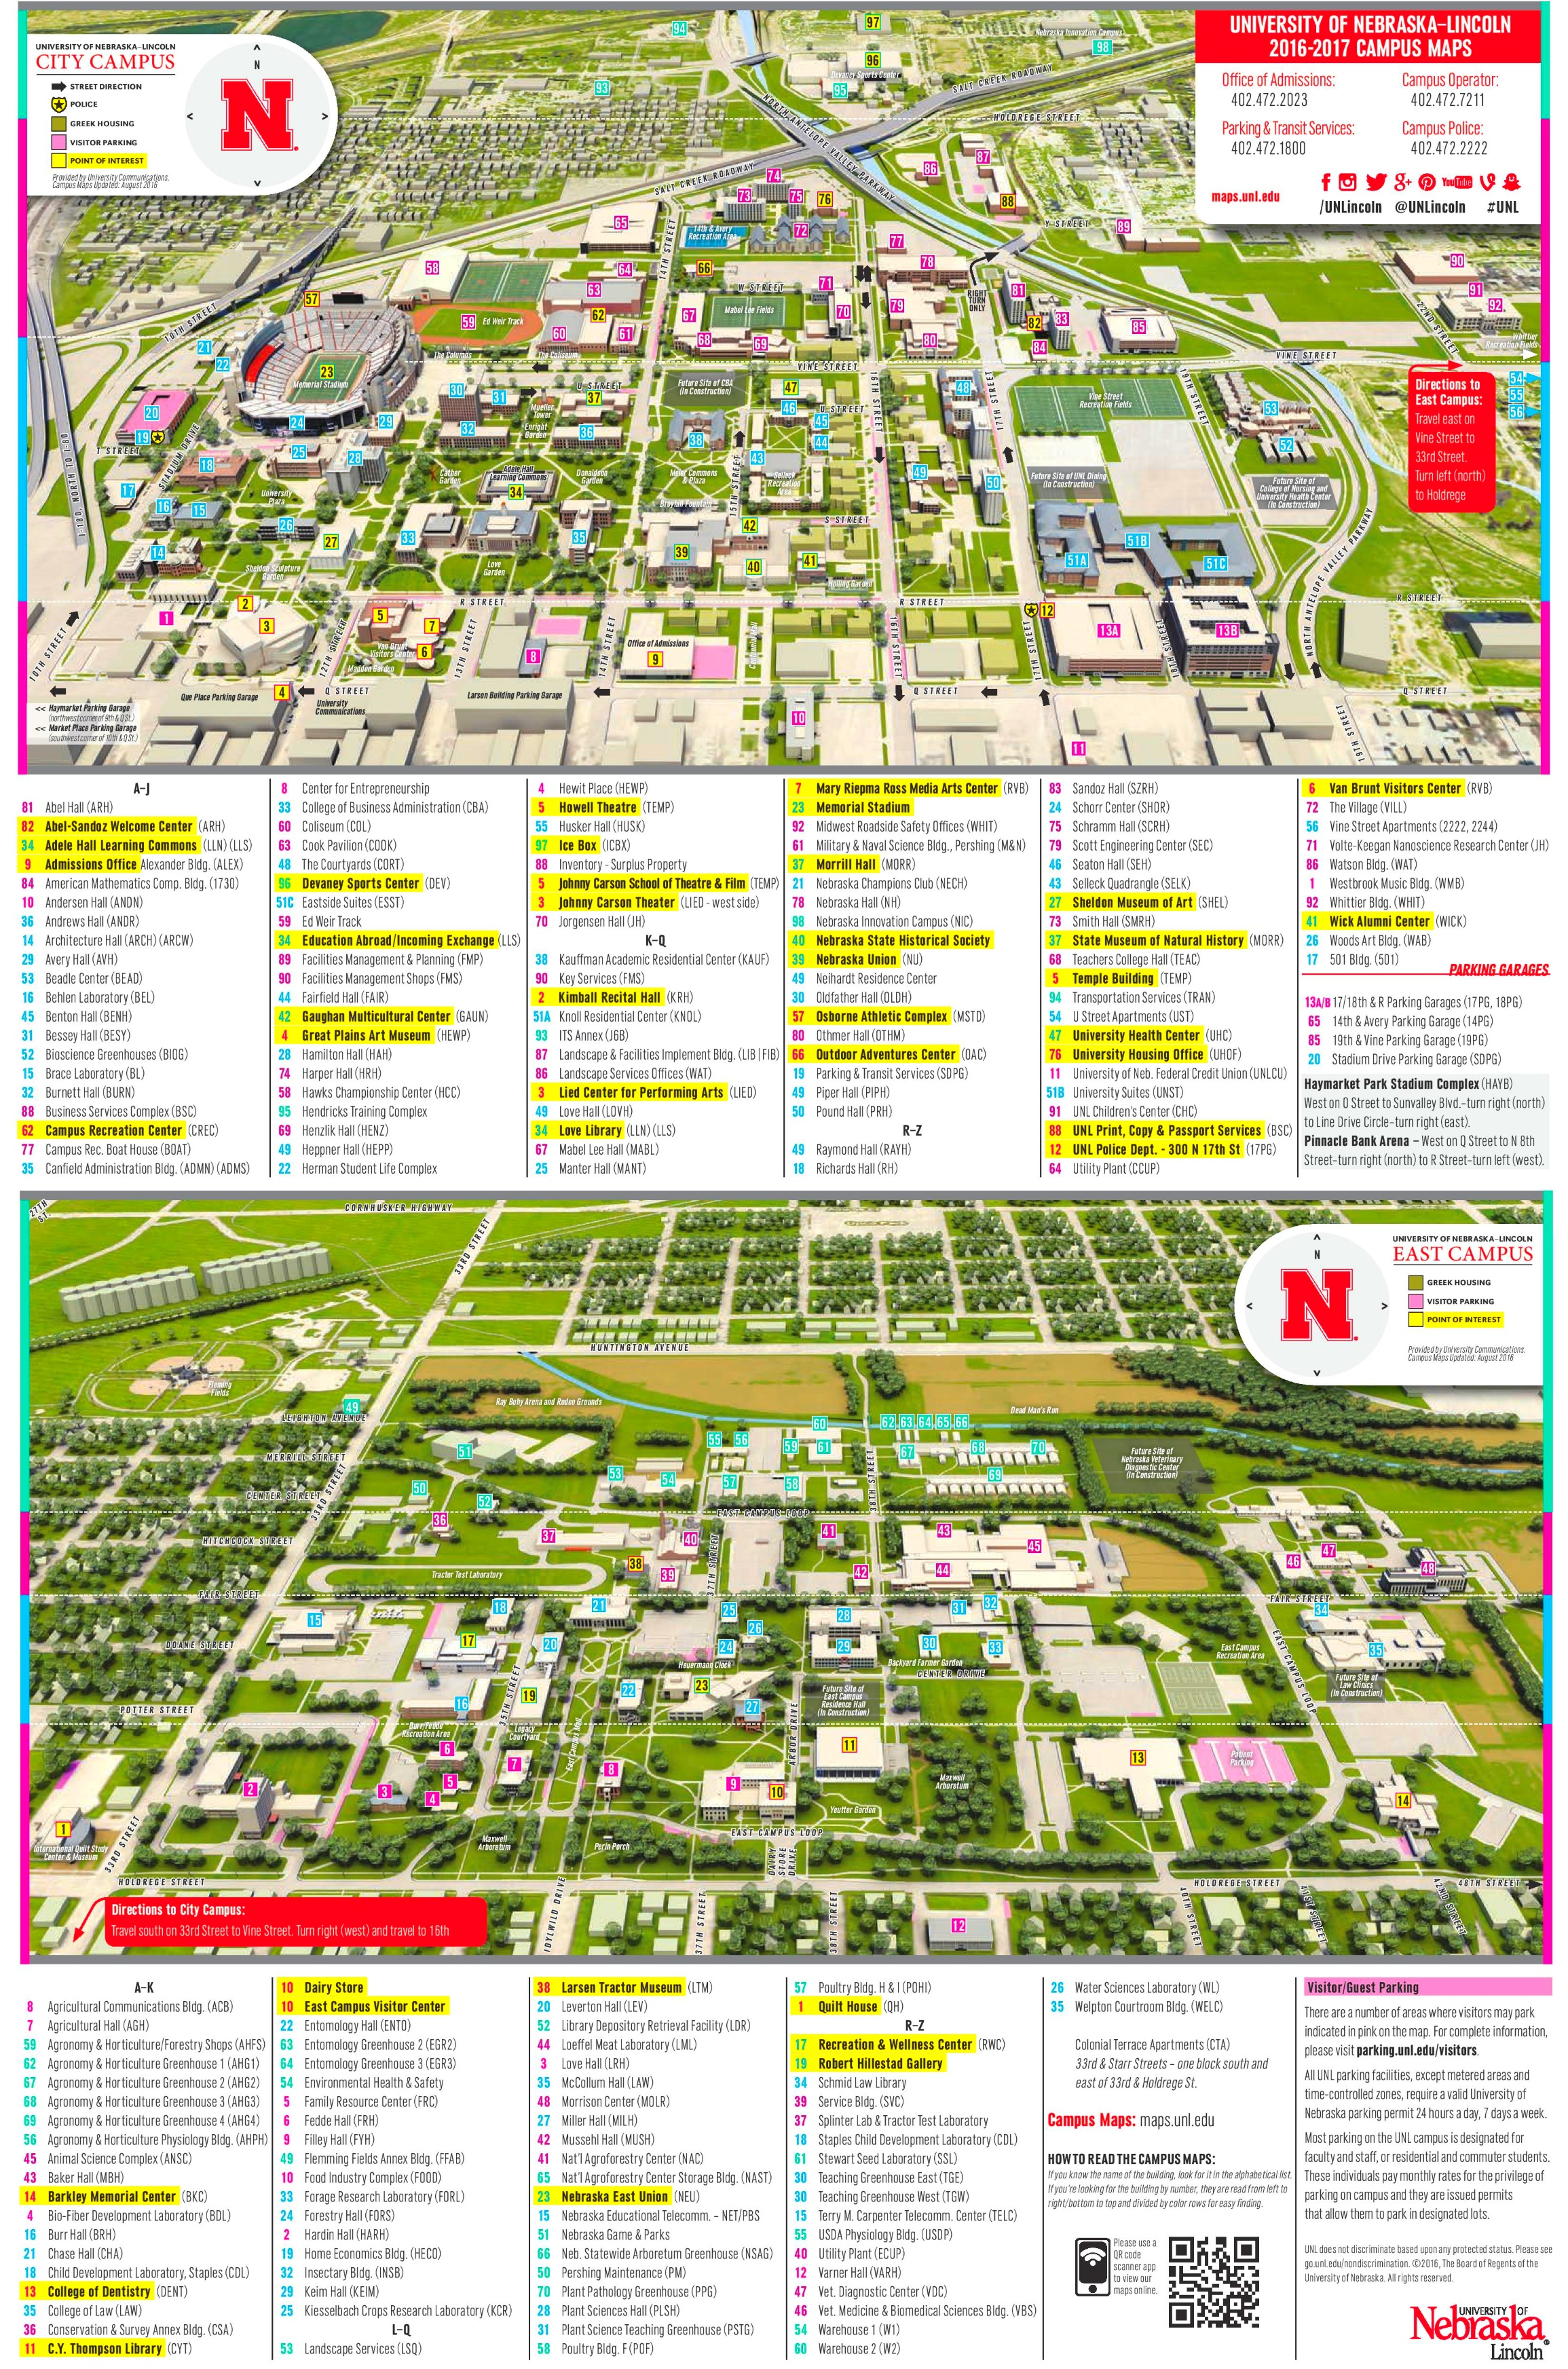 University of Nebraska–Lincoln campus map